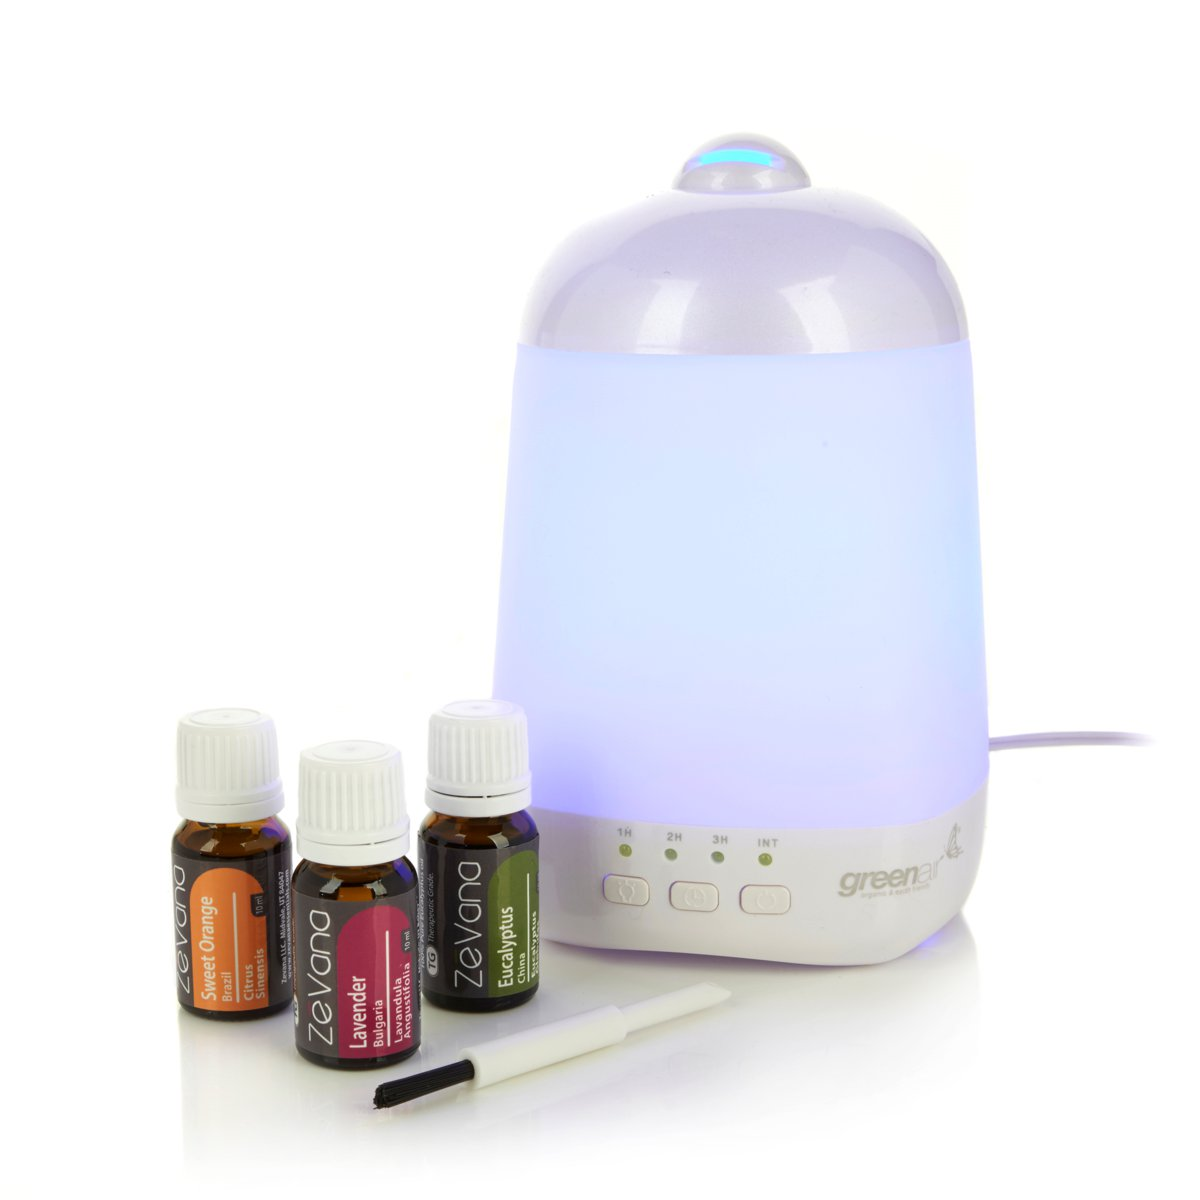 #A25929 Greenair Spa Vapor 2.0 Essential Oil Diffuser Set NEW EBay Most Effective 1175 Aromatherapy Diffuser Set pictures with 1200x1200 px on helpvideos.info - Air Conditioners, Air Coolers and more